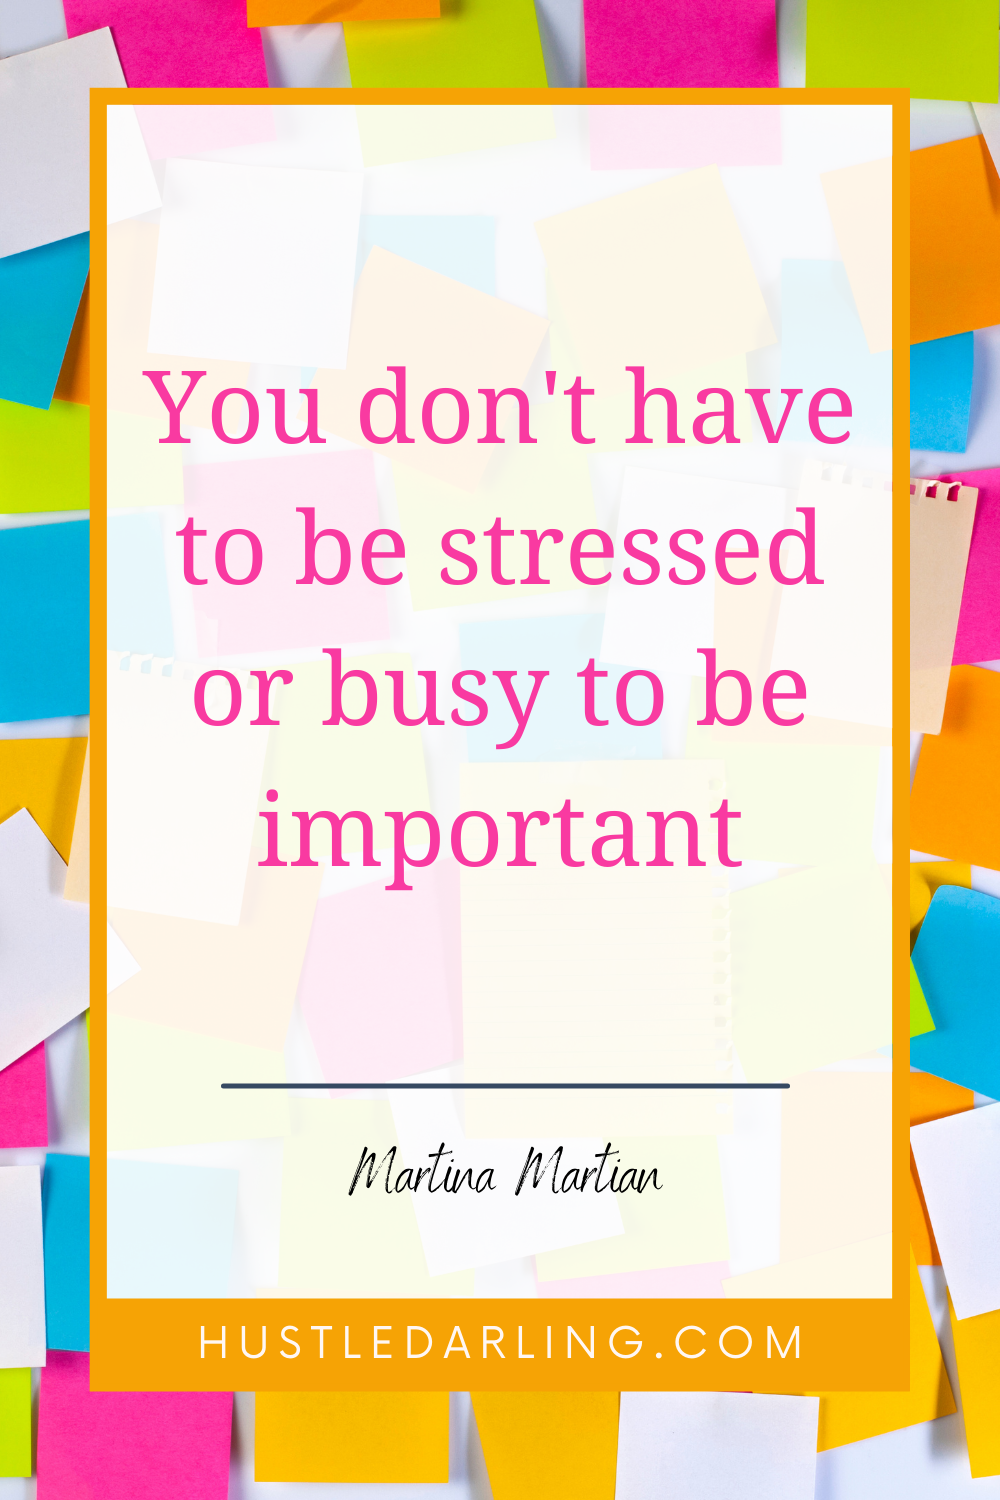 """""""You don't have to be stressed to be important"""" Martina Martian The background image is of many colorful post-it notes"""